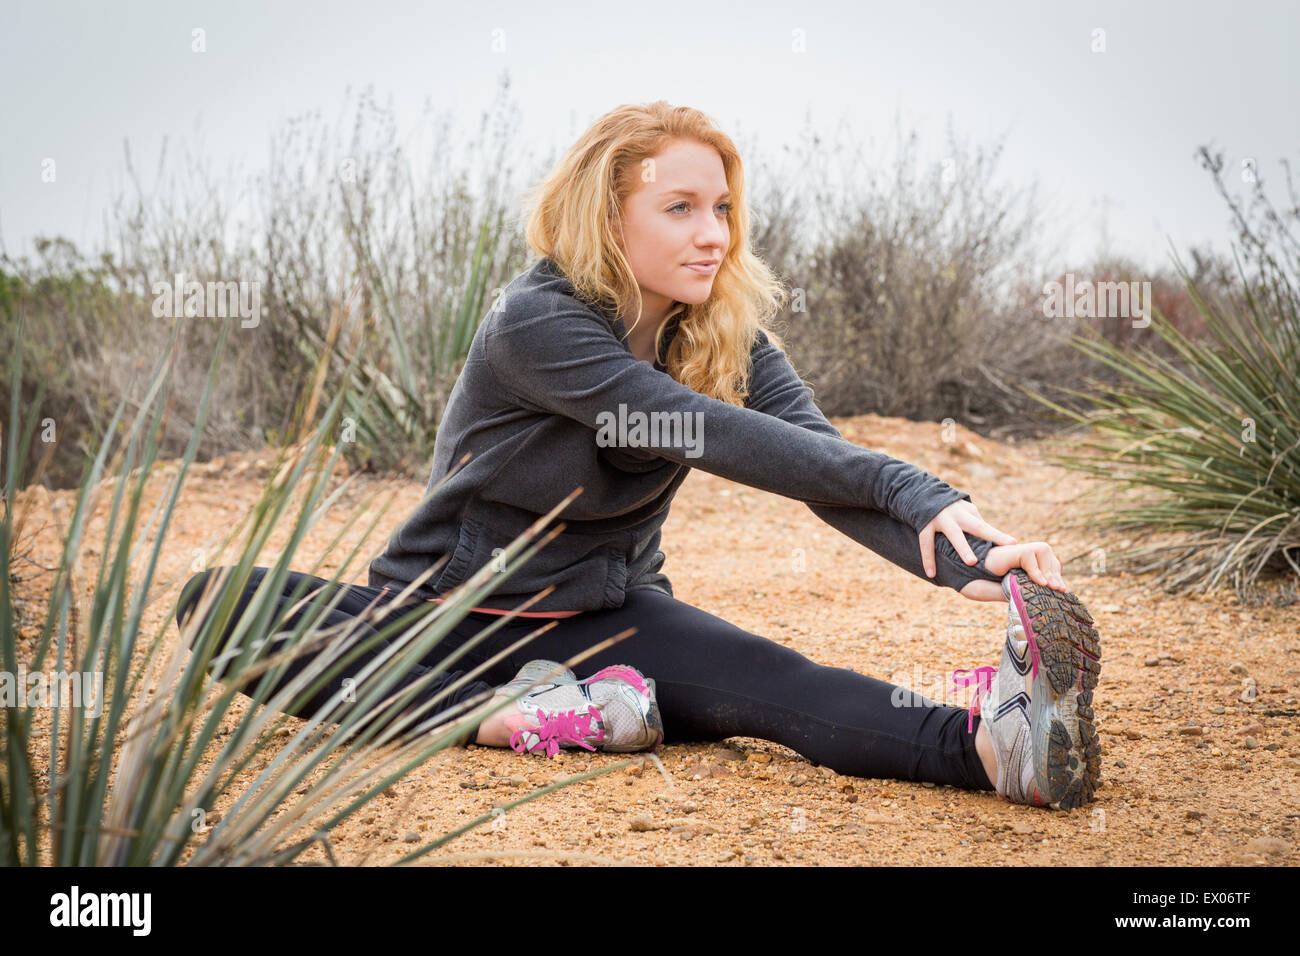 Young female runner stretching to touch toes - Stock Image